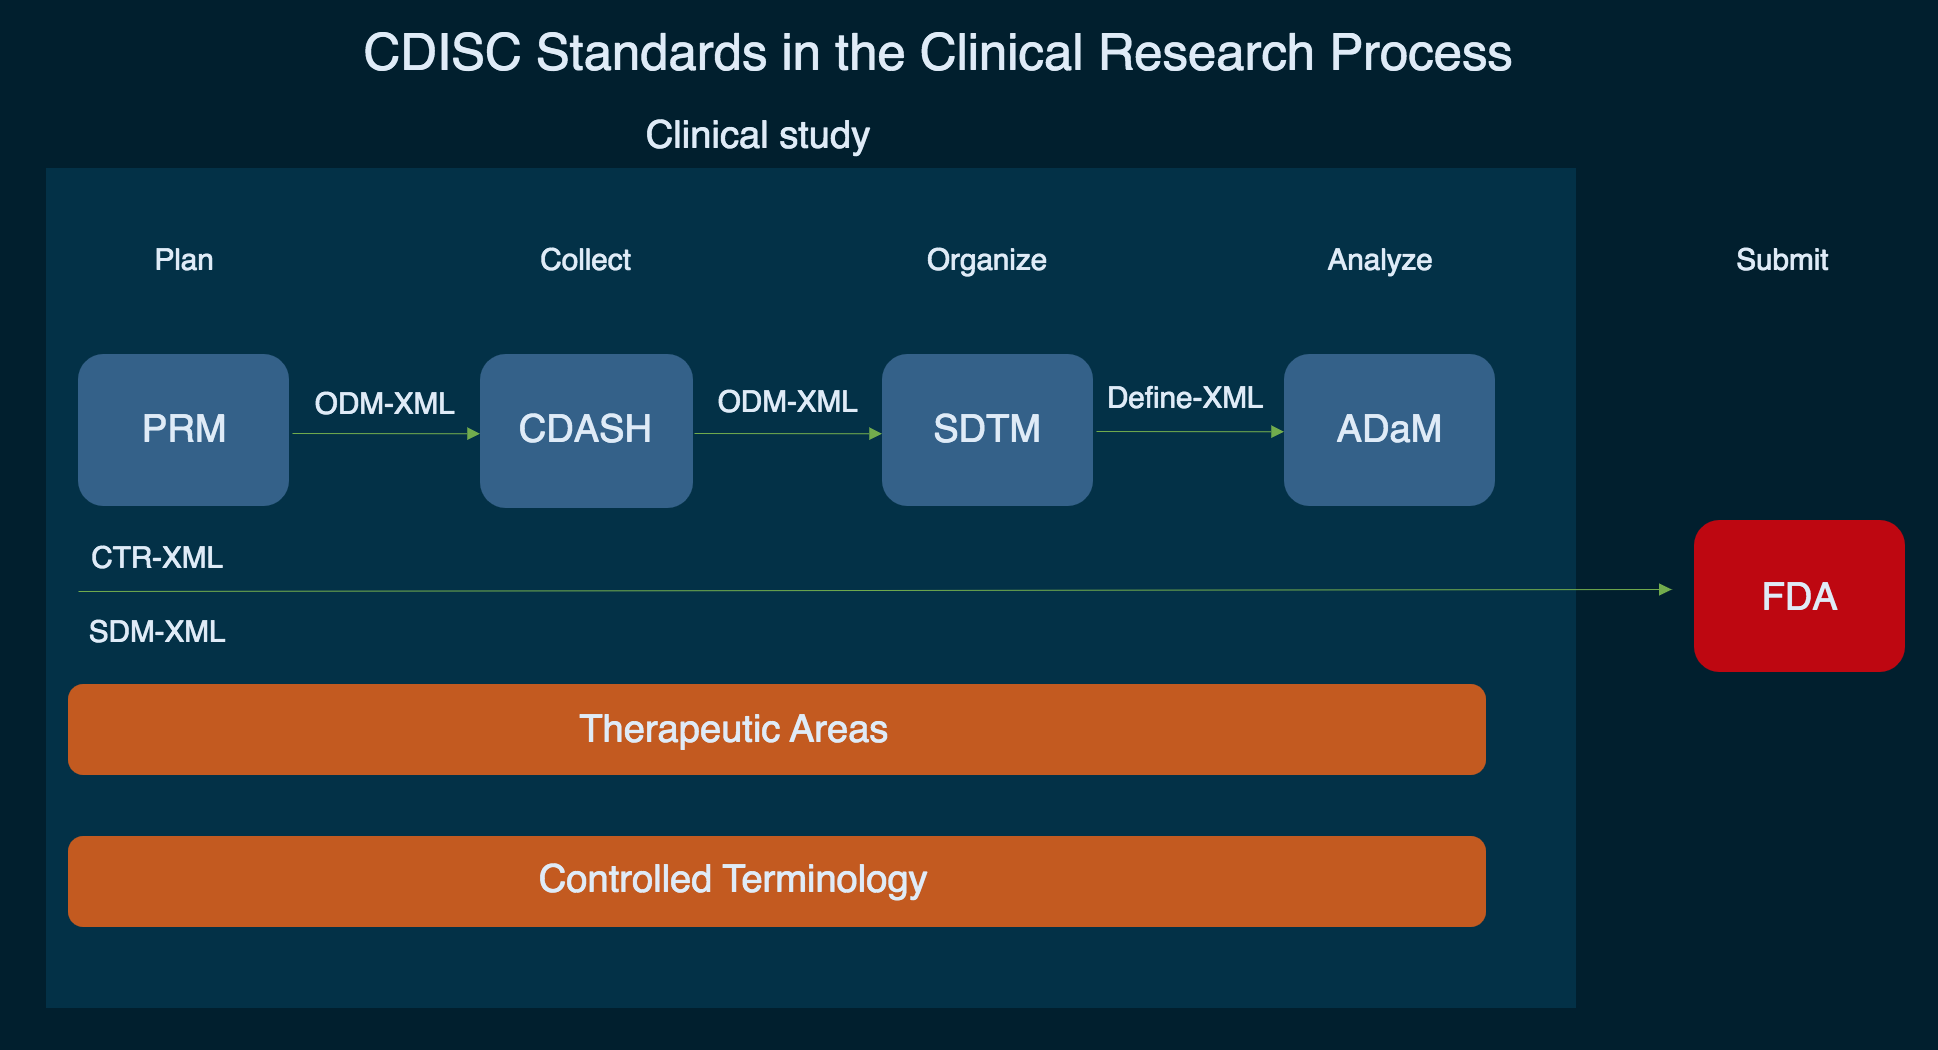 cdisc standards map